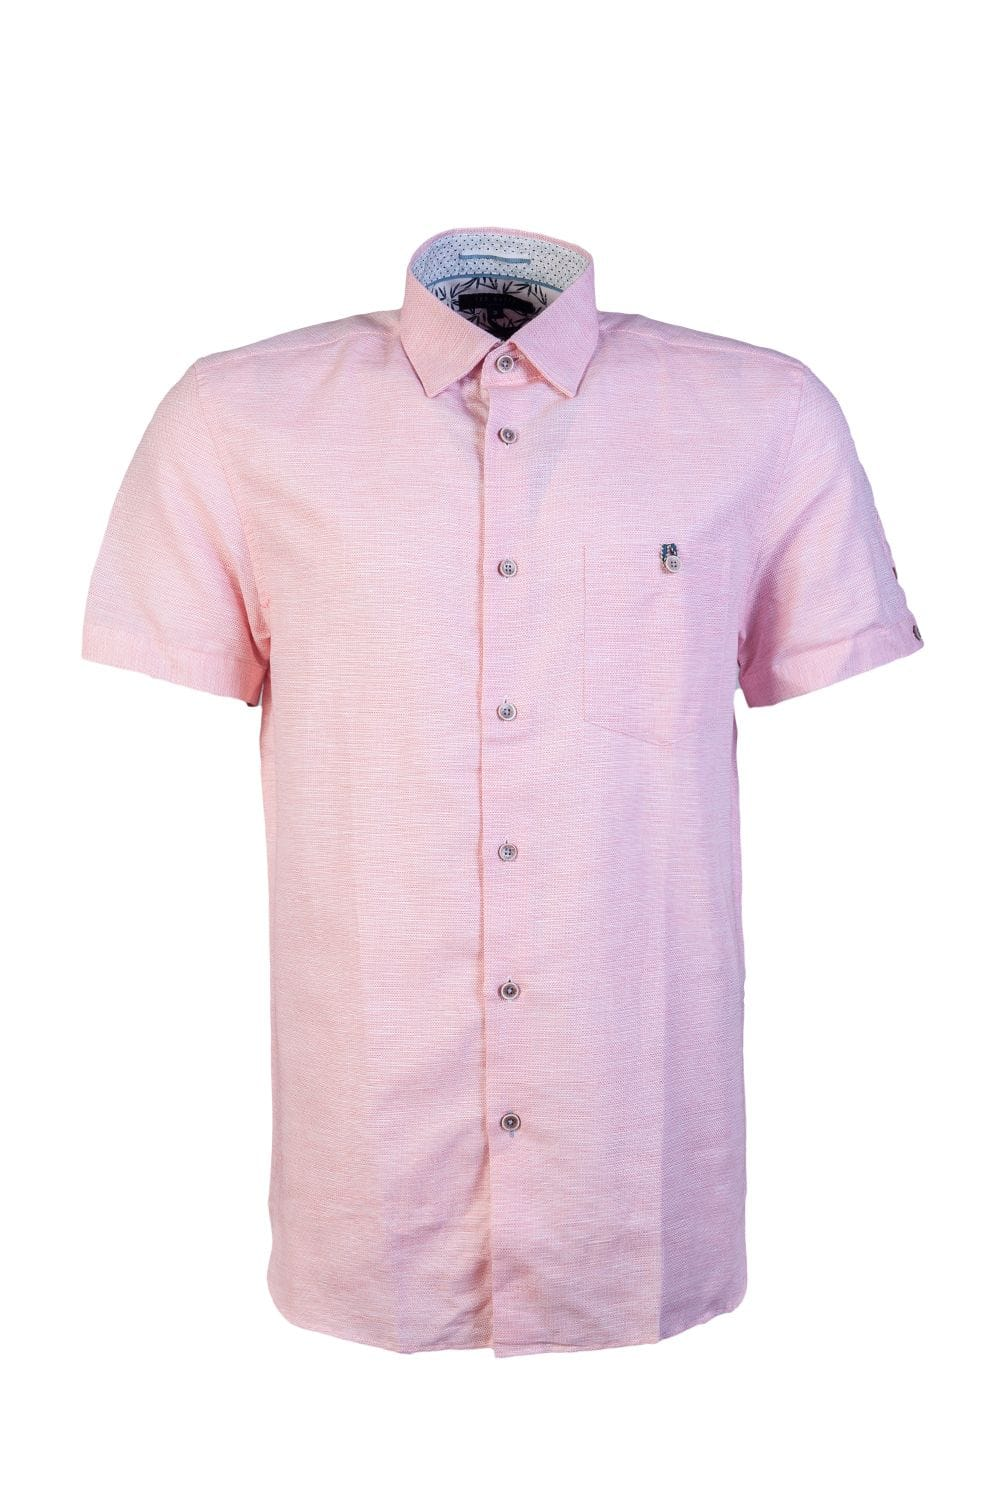 f3118a36ffa28 Ted Baker Short Sleeve Shirt TH8M   GA51   PEEZE - Clothing from Sage  Clothing UK